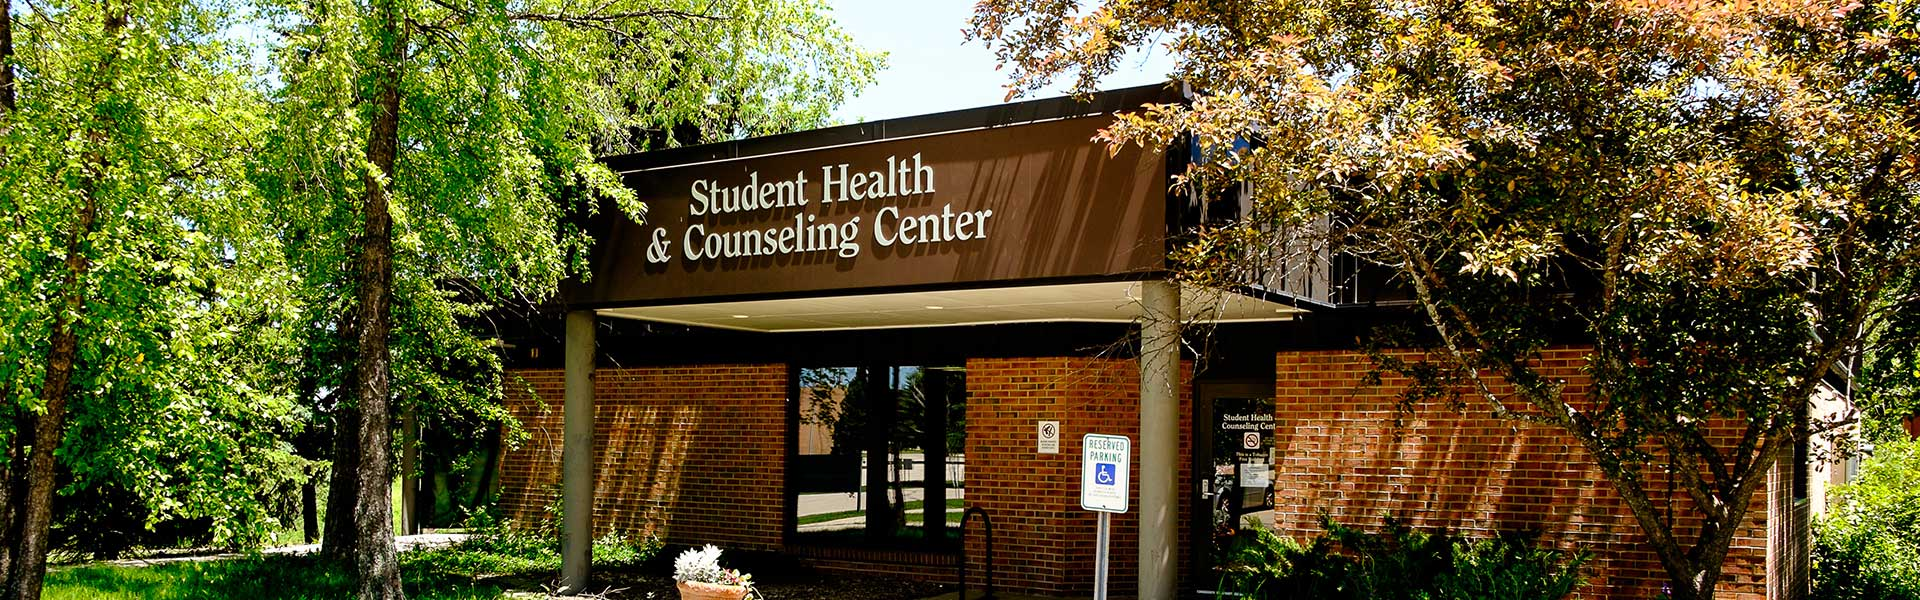 Student Health and Counseling Center | UW-Parkside